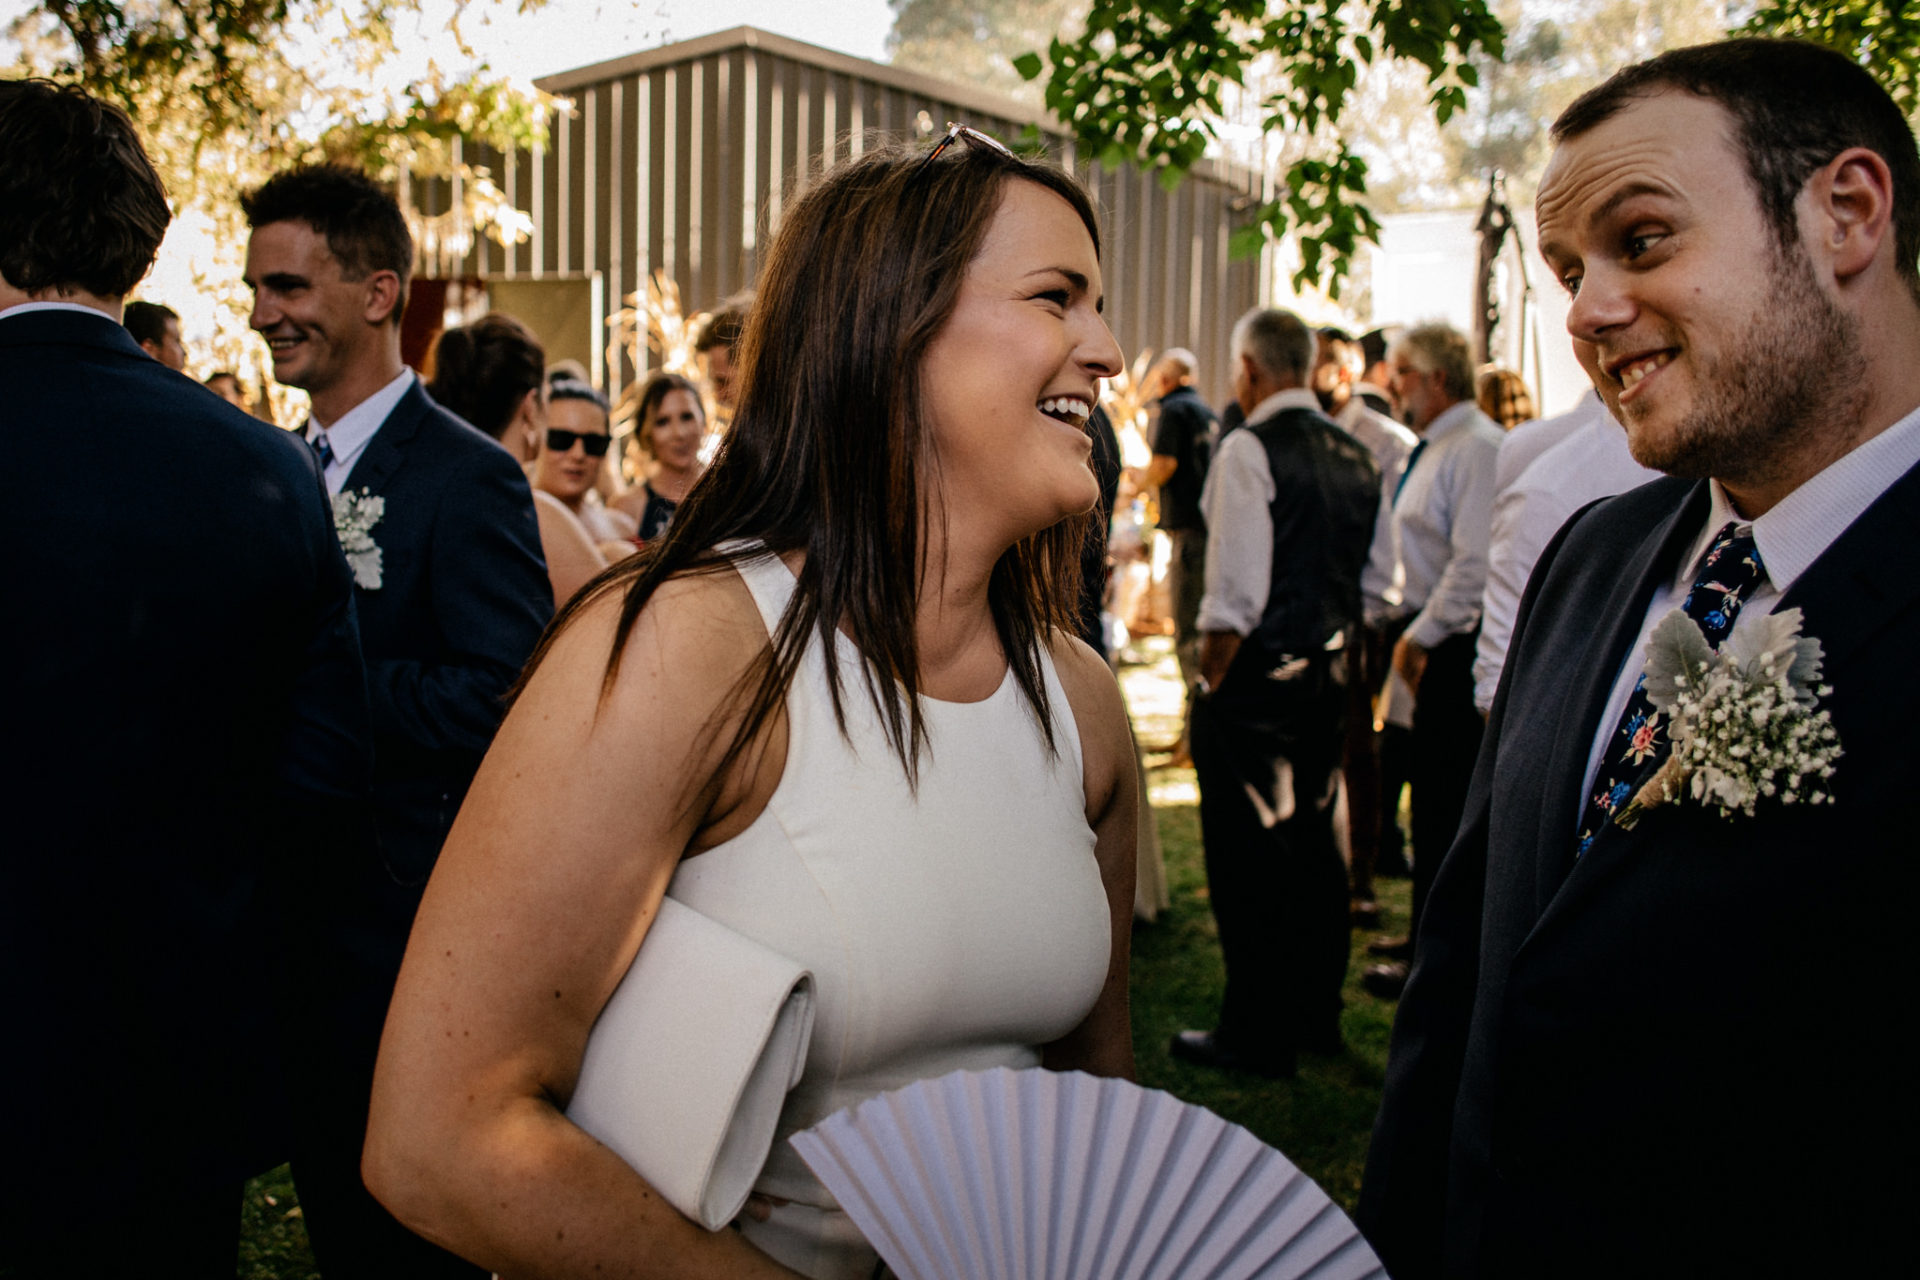 backyard-wedding-australia-melbourne-reception-wedding-guests